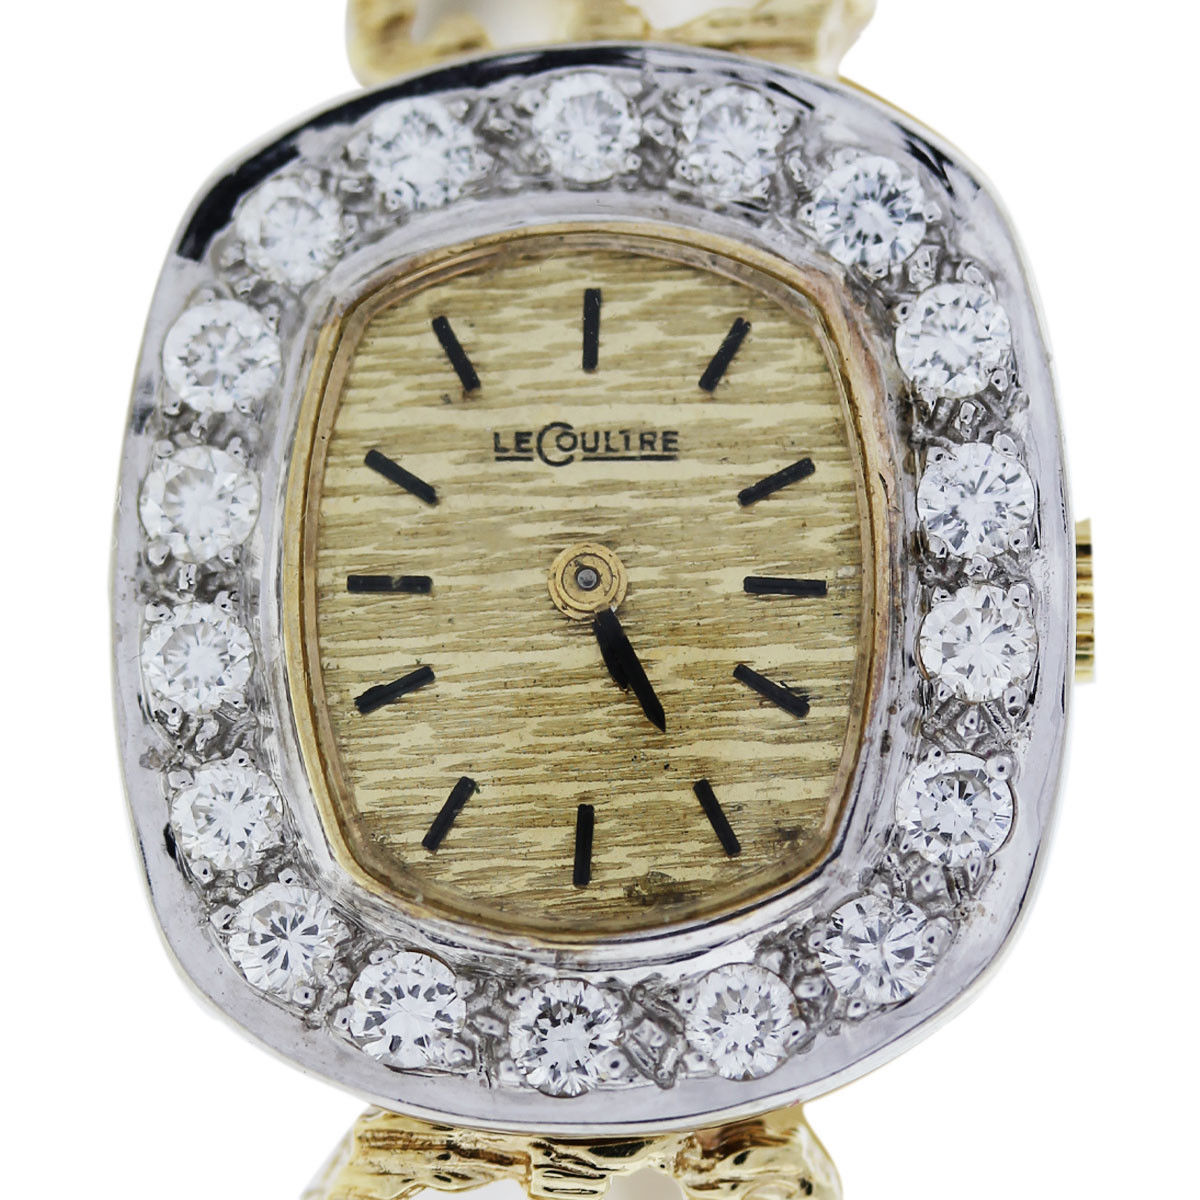 You are viewing this LeCoultre 14k Yellow Gold Diamond Bezel Ladies Watch!